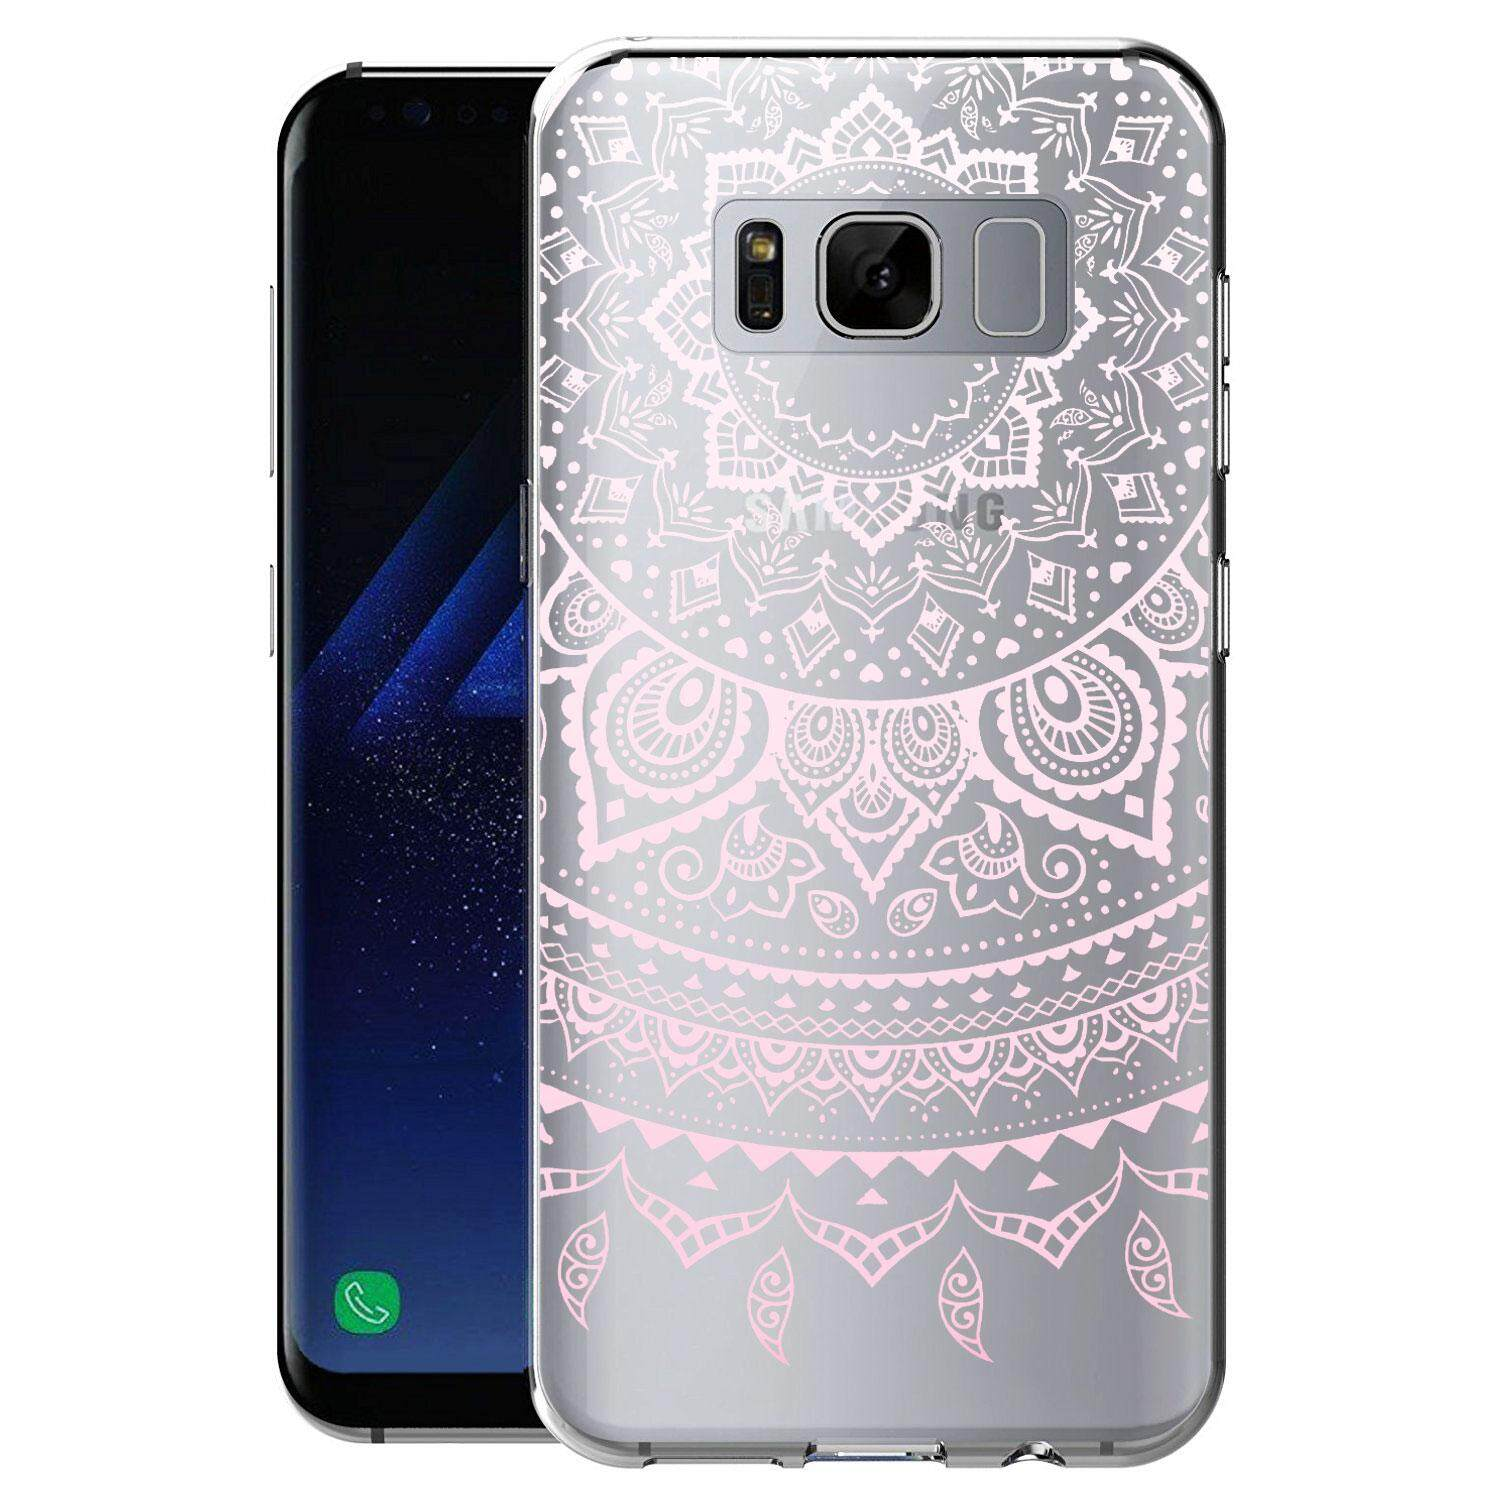 Rymall for Galaxy S8 TPU Case Crystal Clear Case Transparent Soft Silicone Shock Absorption Bumper